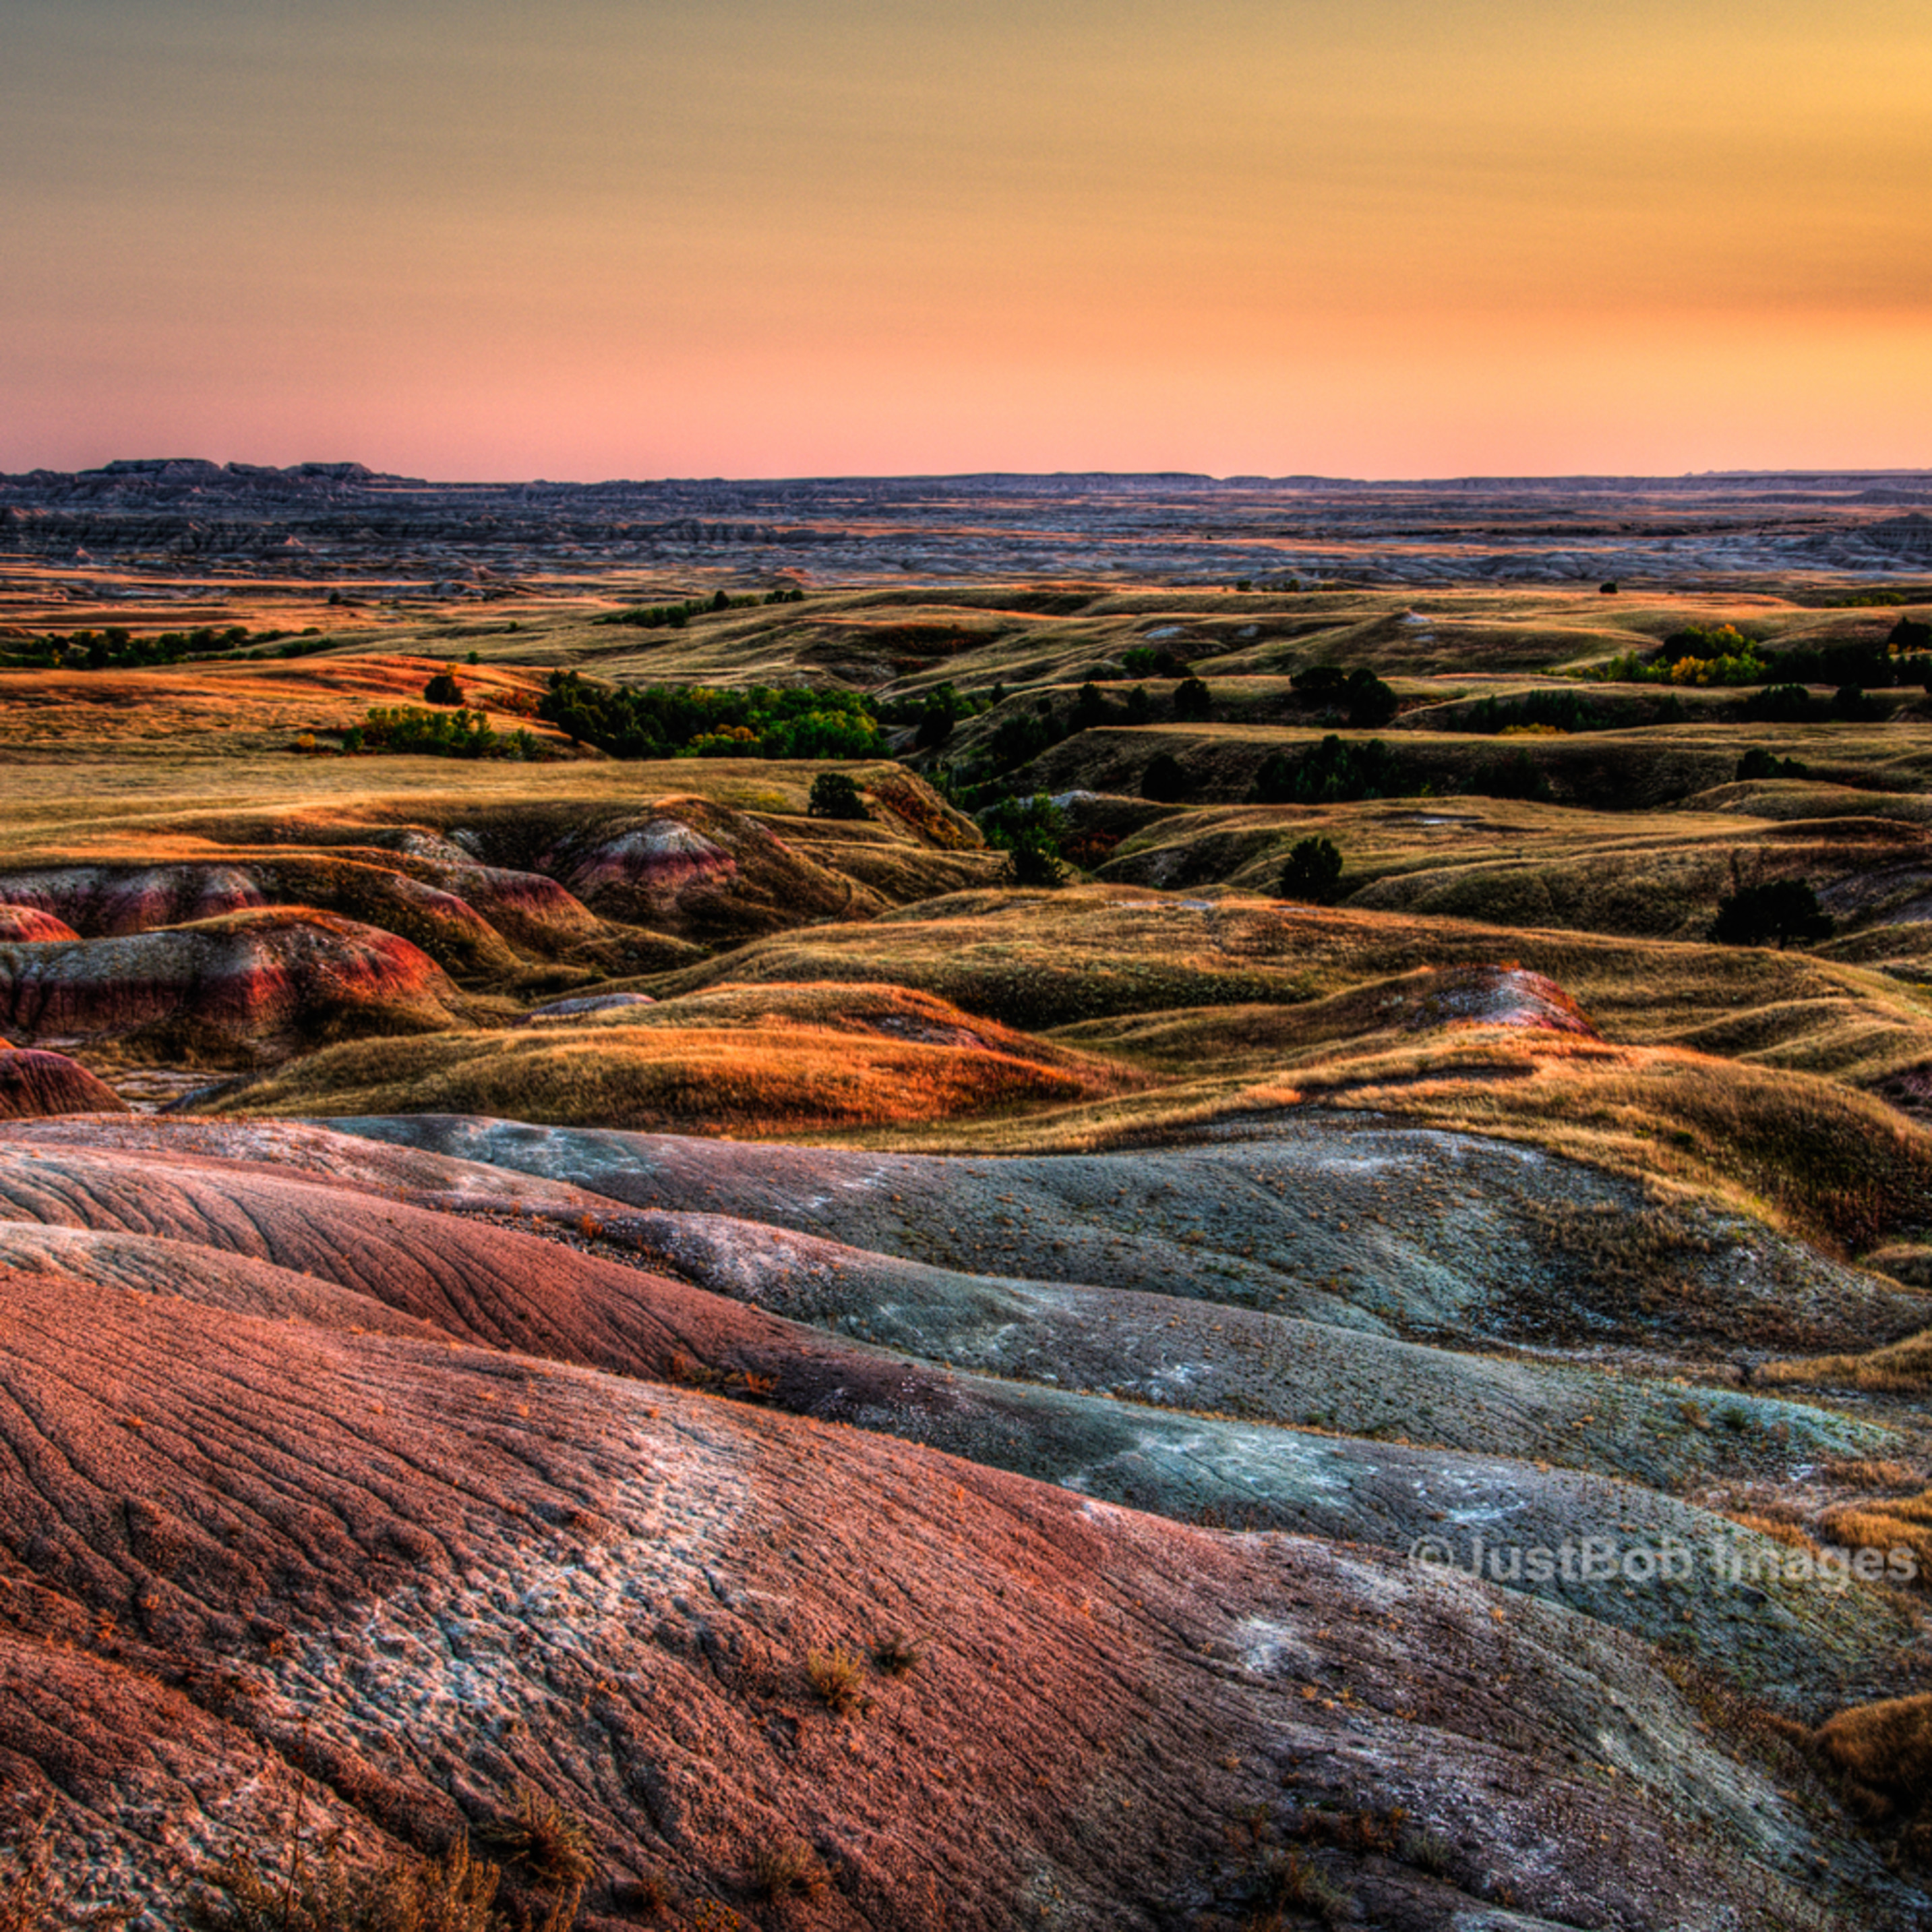 Badlands 20080919 765 6 7 8 9hdr tonemapped uksufv